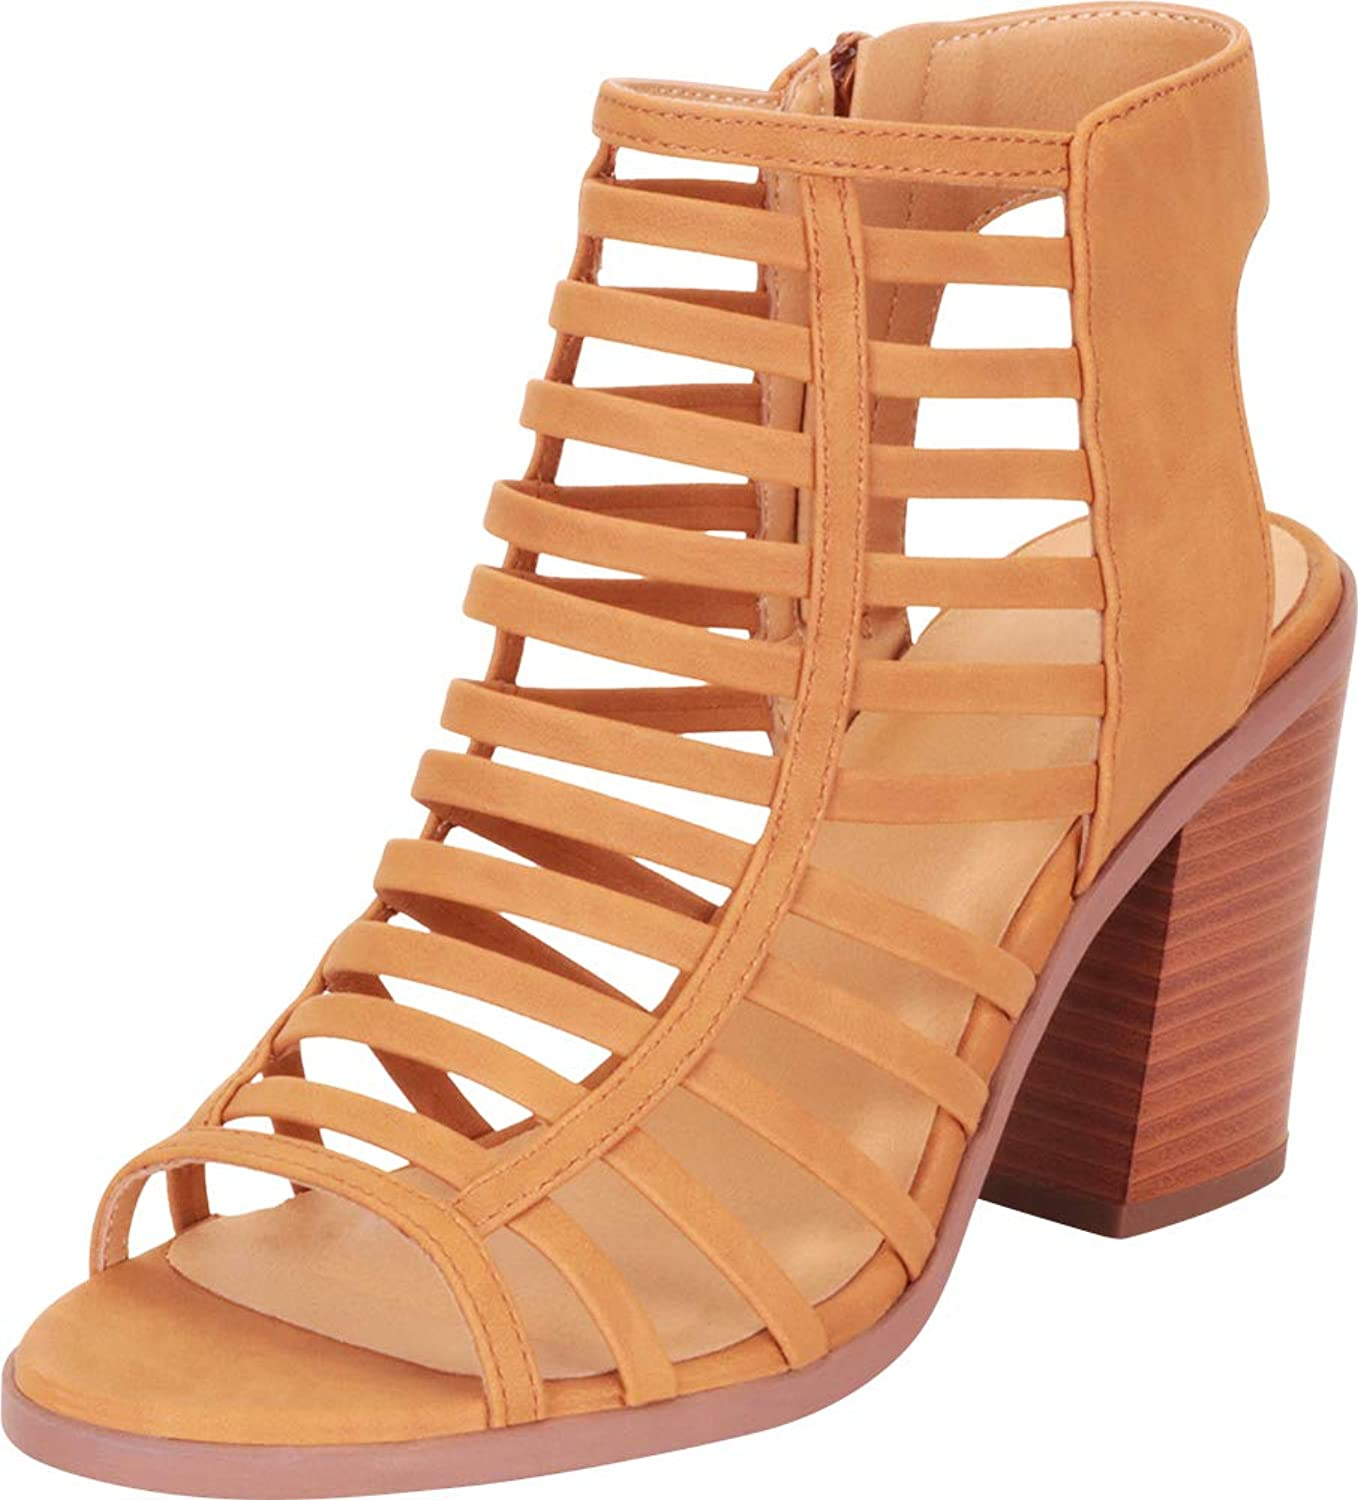 Cambridge Select Women's Open Toe Caged Cutout Strappy Chunky Stacked Block Heel Ankle Bootie